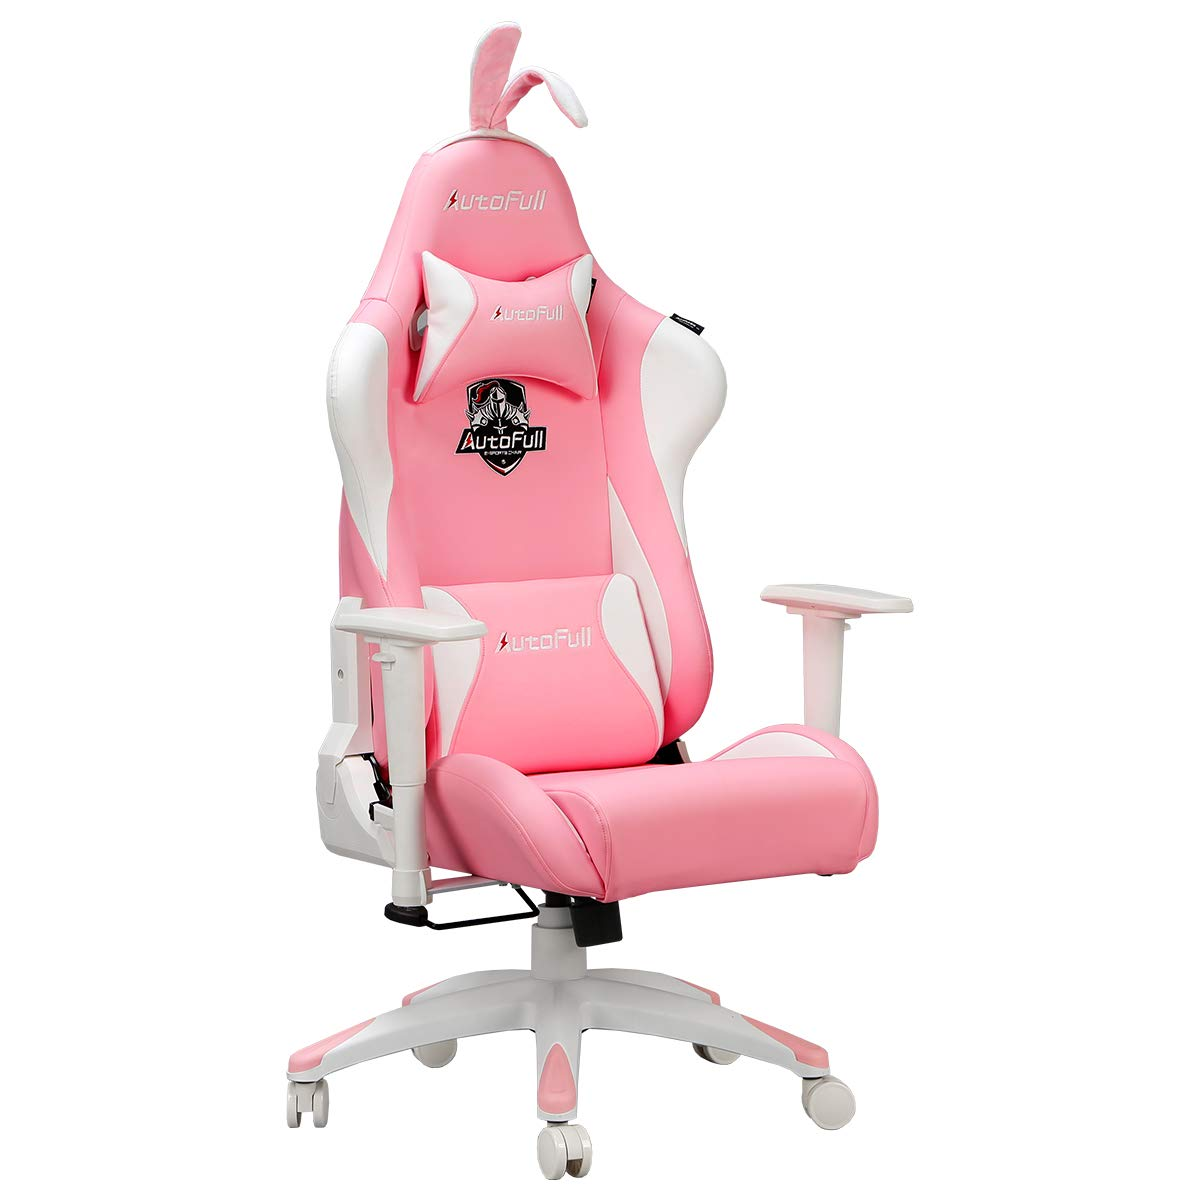 online store 2b005 bc5c5 AutoFull Pink Gaming Chair PU Leather High Back Ergonomic Racing Office  Desk Computer Chairs with Massager Lumbar Support, Rabbit Ears